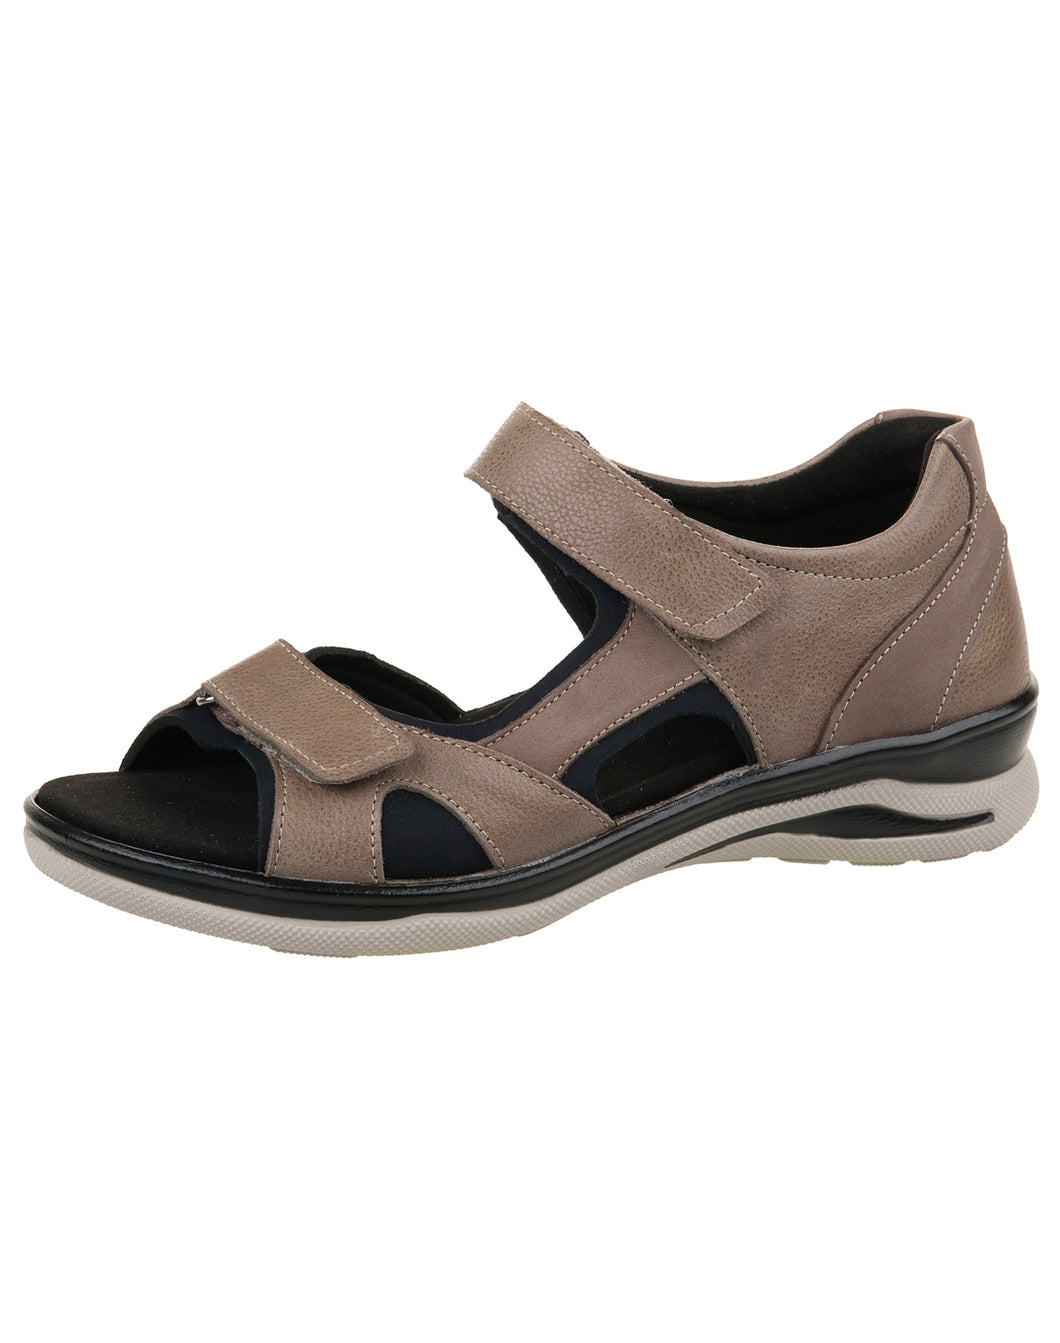 FIDELIO 496023 HILLY BACK IN SANDAL 35-43F - TAUPE SANTIAGO NUBUK